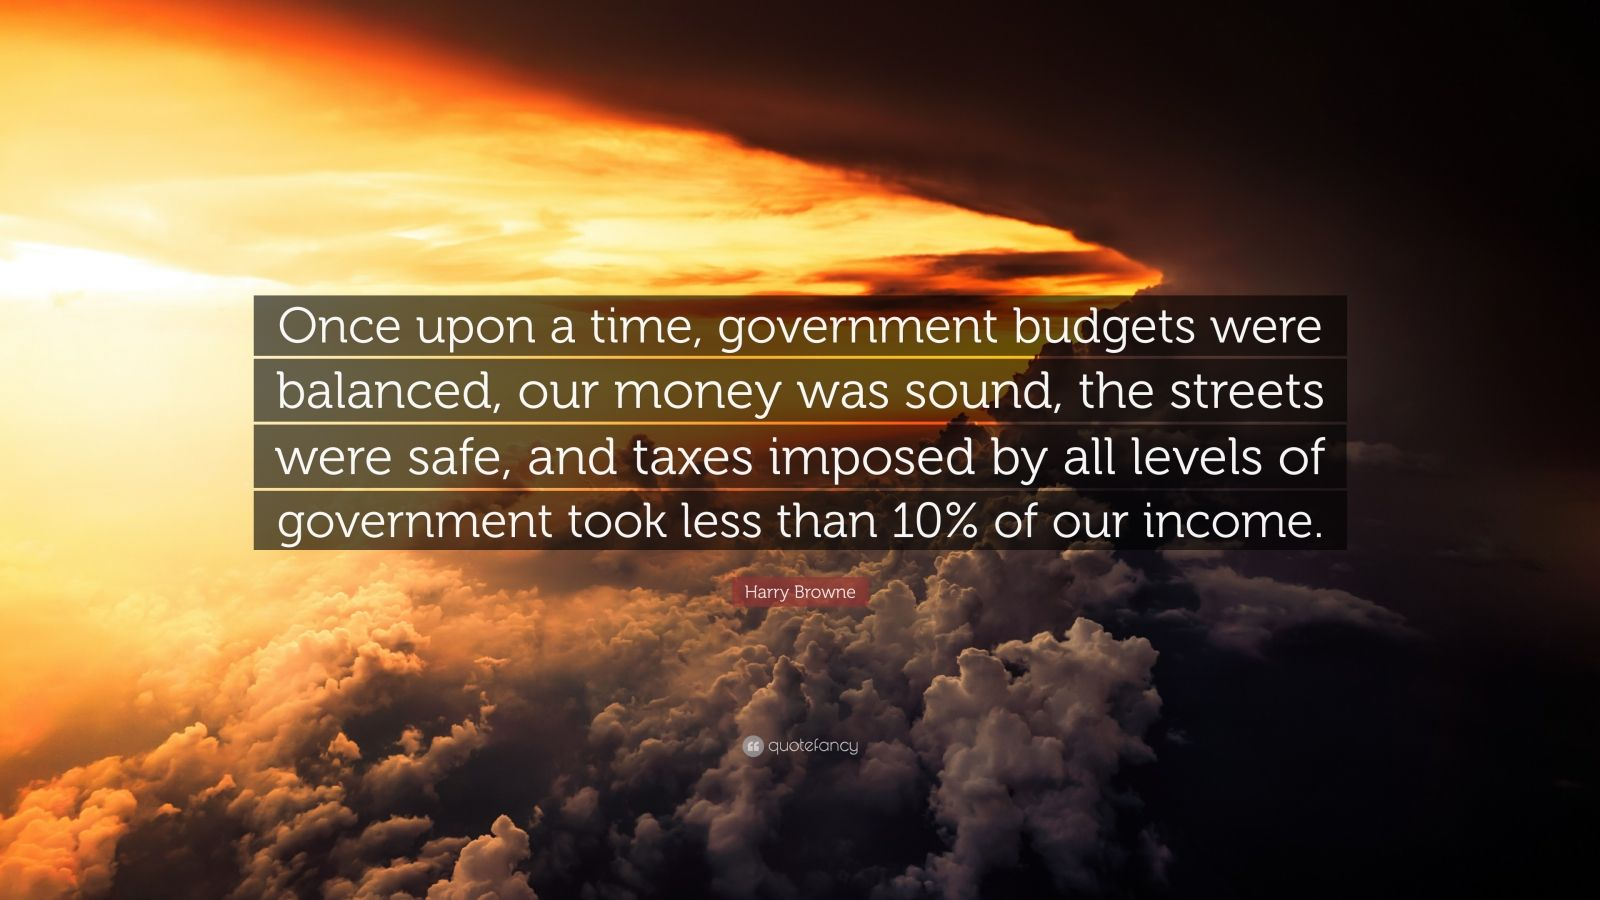 "Harry Browne Quote: ""Once upon a time, government budgets were balanced, our money was sound, the streets were safe, and taxes imposed by all levels of government took less than 10% of our income."""